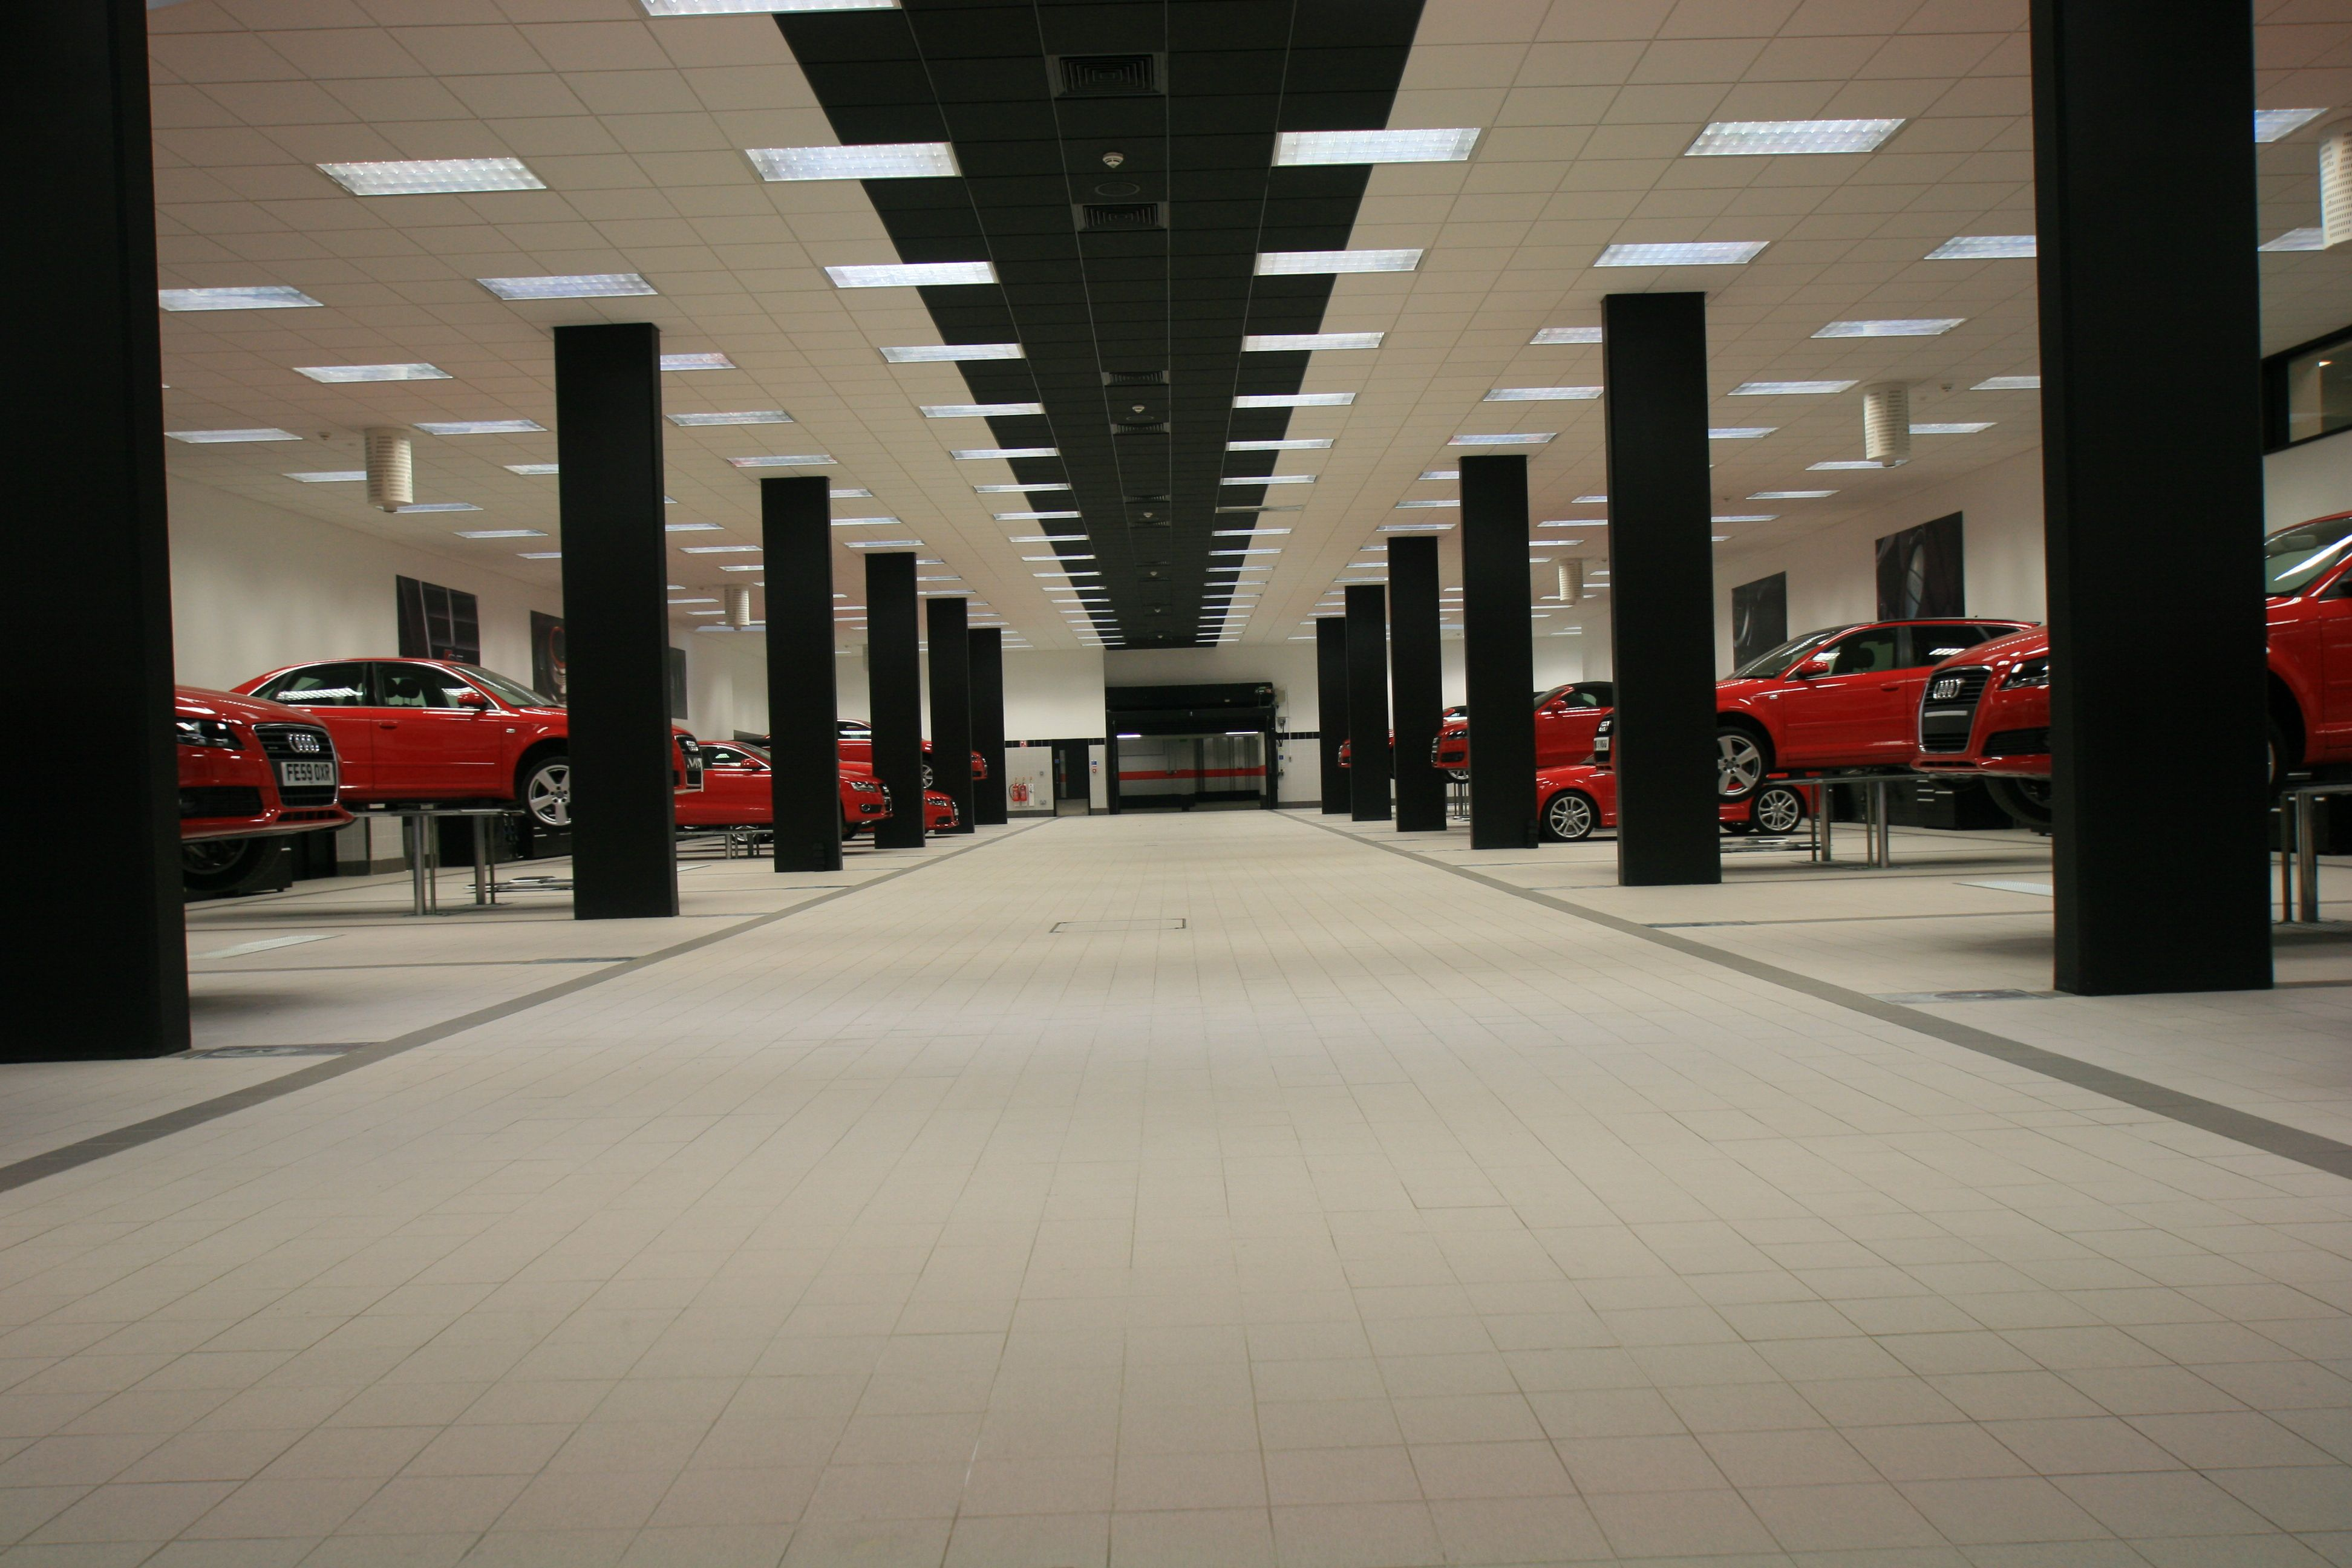 Salary At Mercedes Benz >> The largest Audi dealership of the world – Audi West London, UK | Only cars and cars